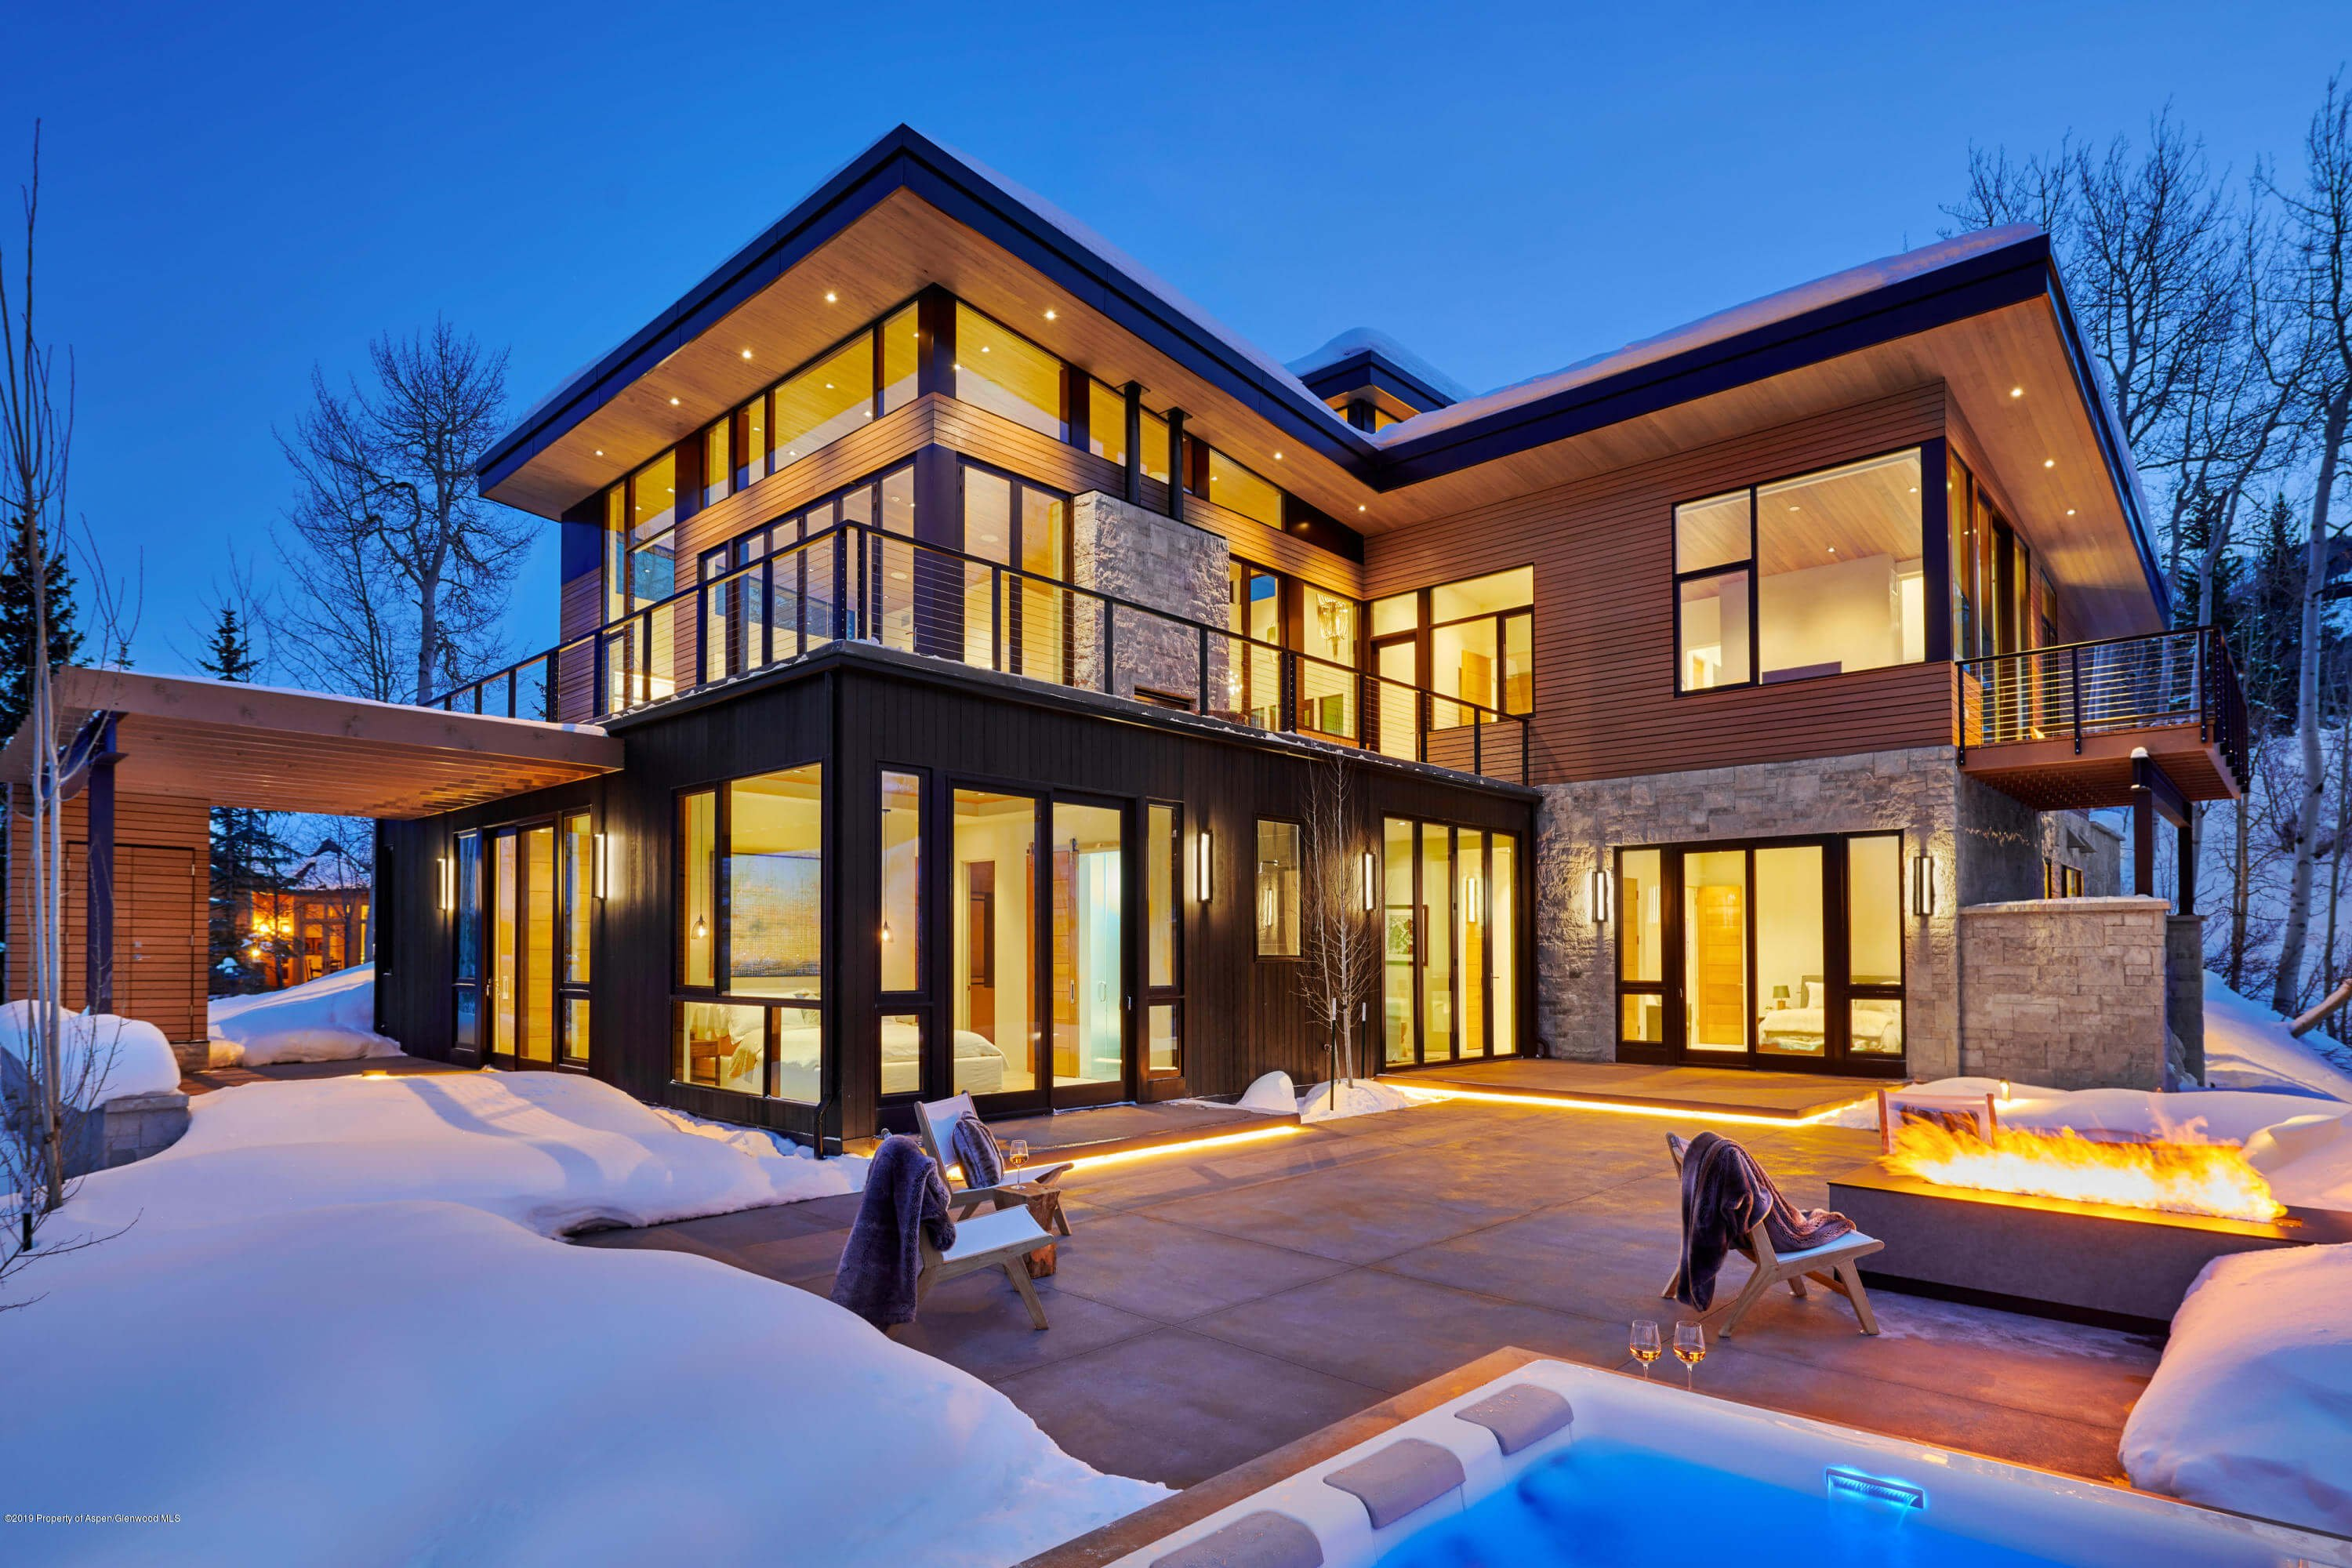 Slopeside 2018 Built Snowmass Contemporary Home at 1627 Wood Rd Closes at $9.45MM/$1,791 SF Furnished Image